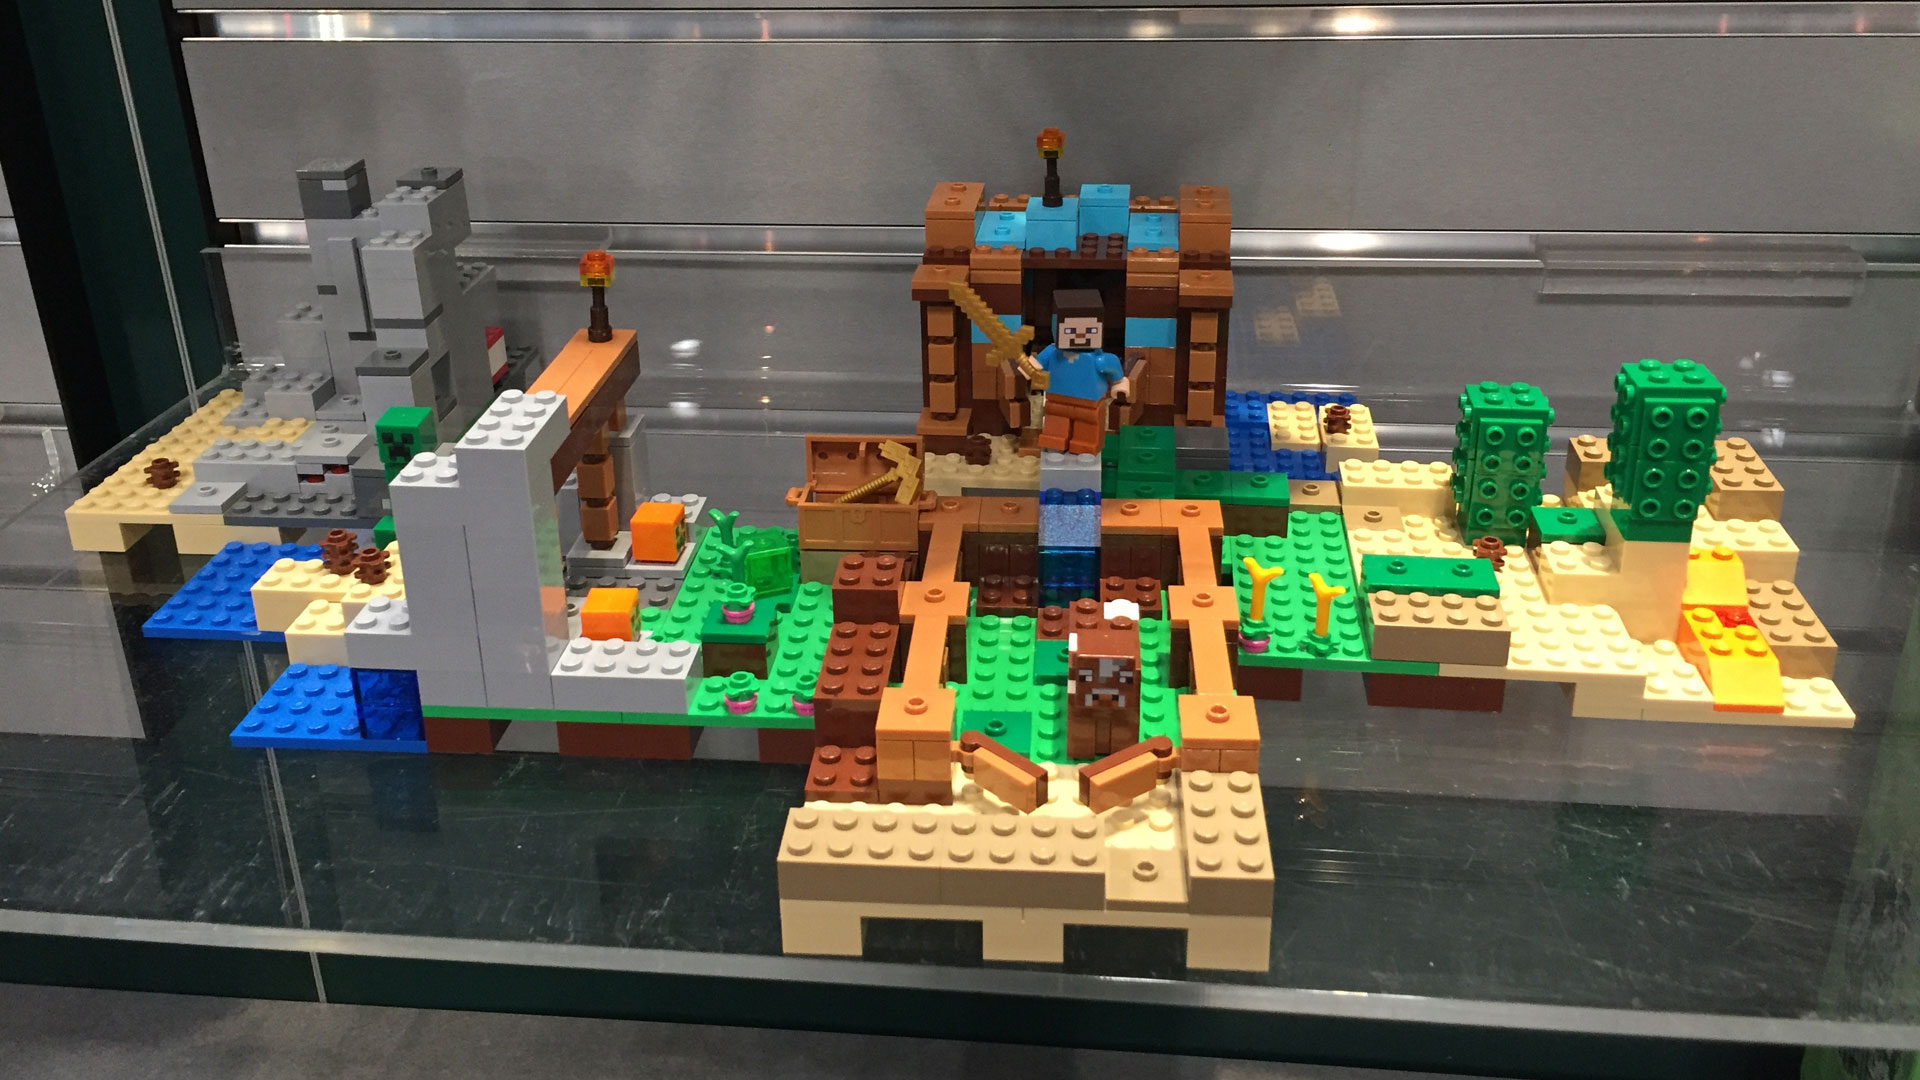 LEGO Minecraft Set 21134 The Waterfall Base at Toy Fair 2017